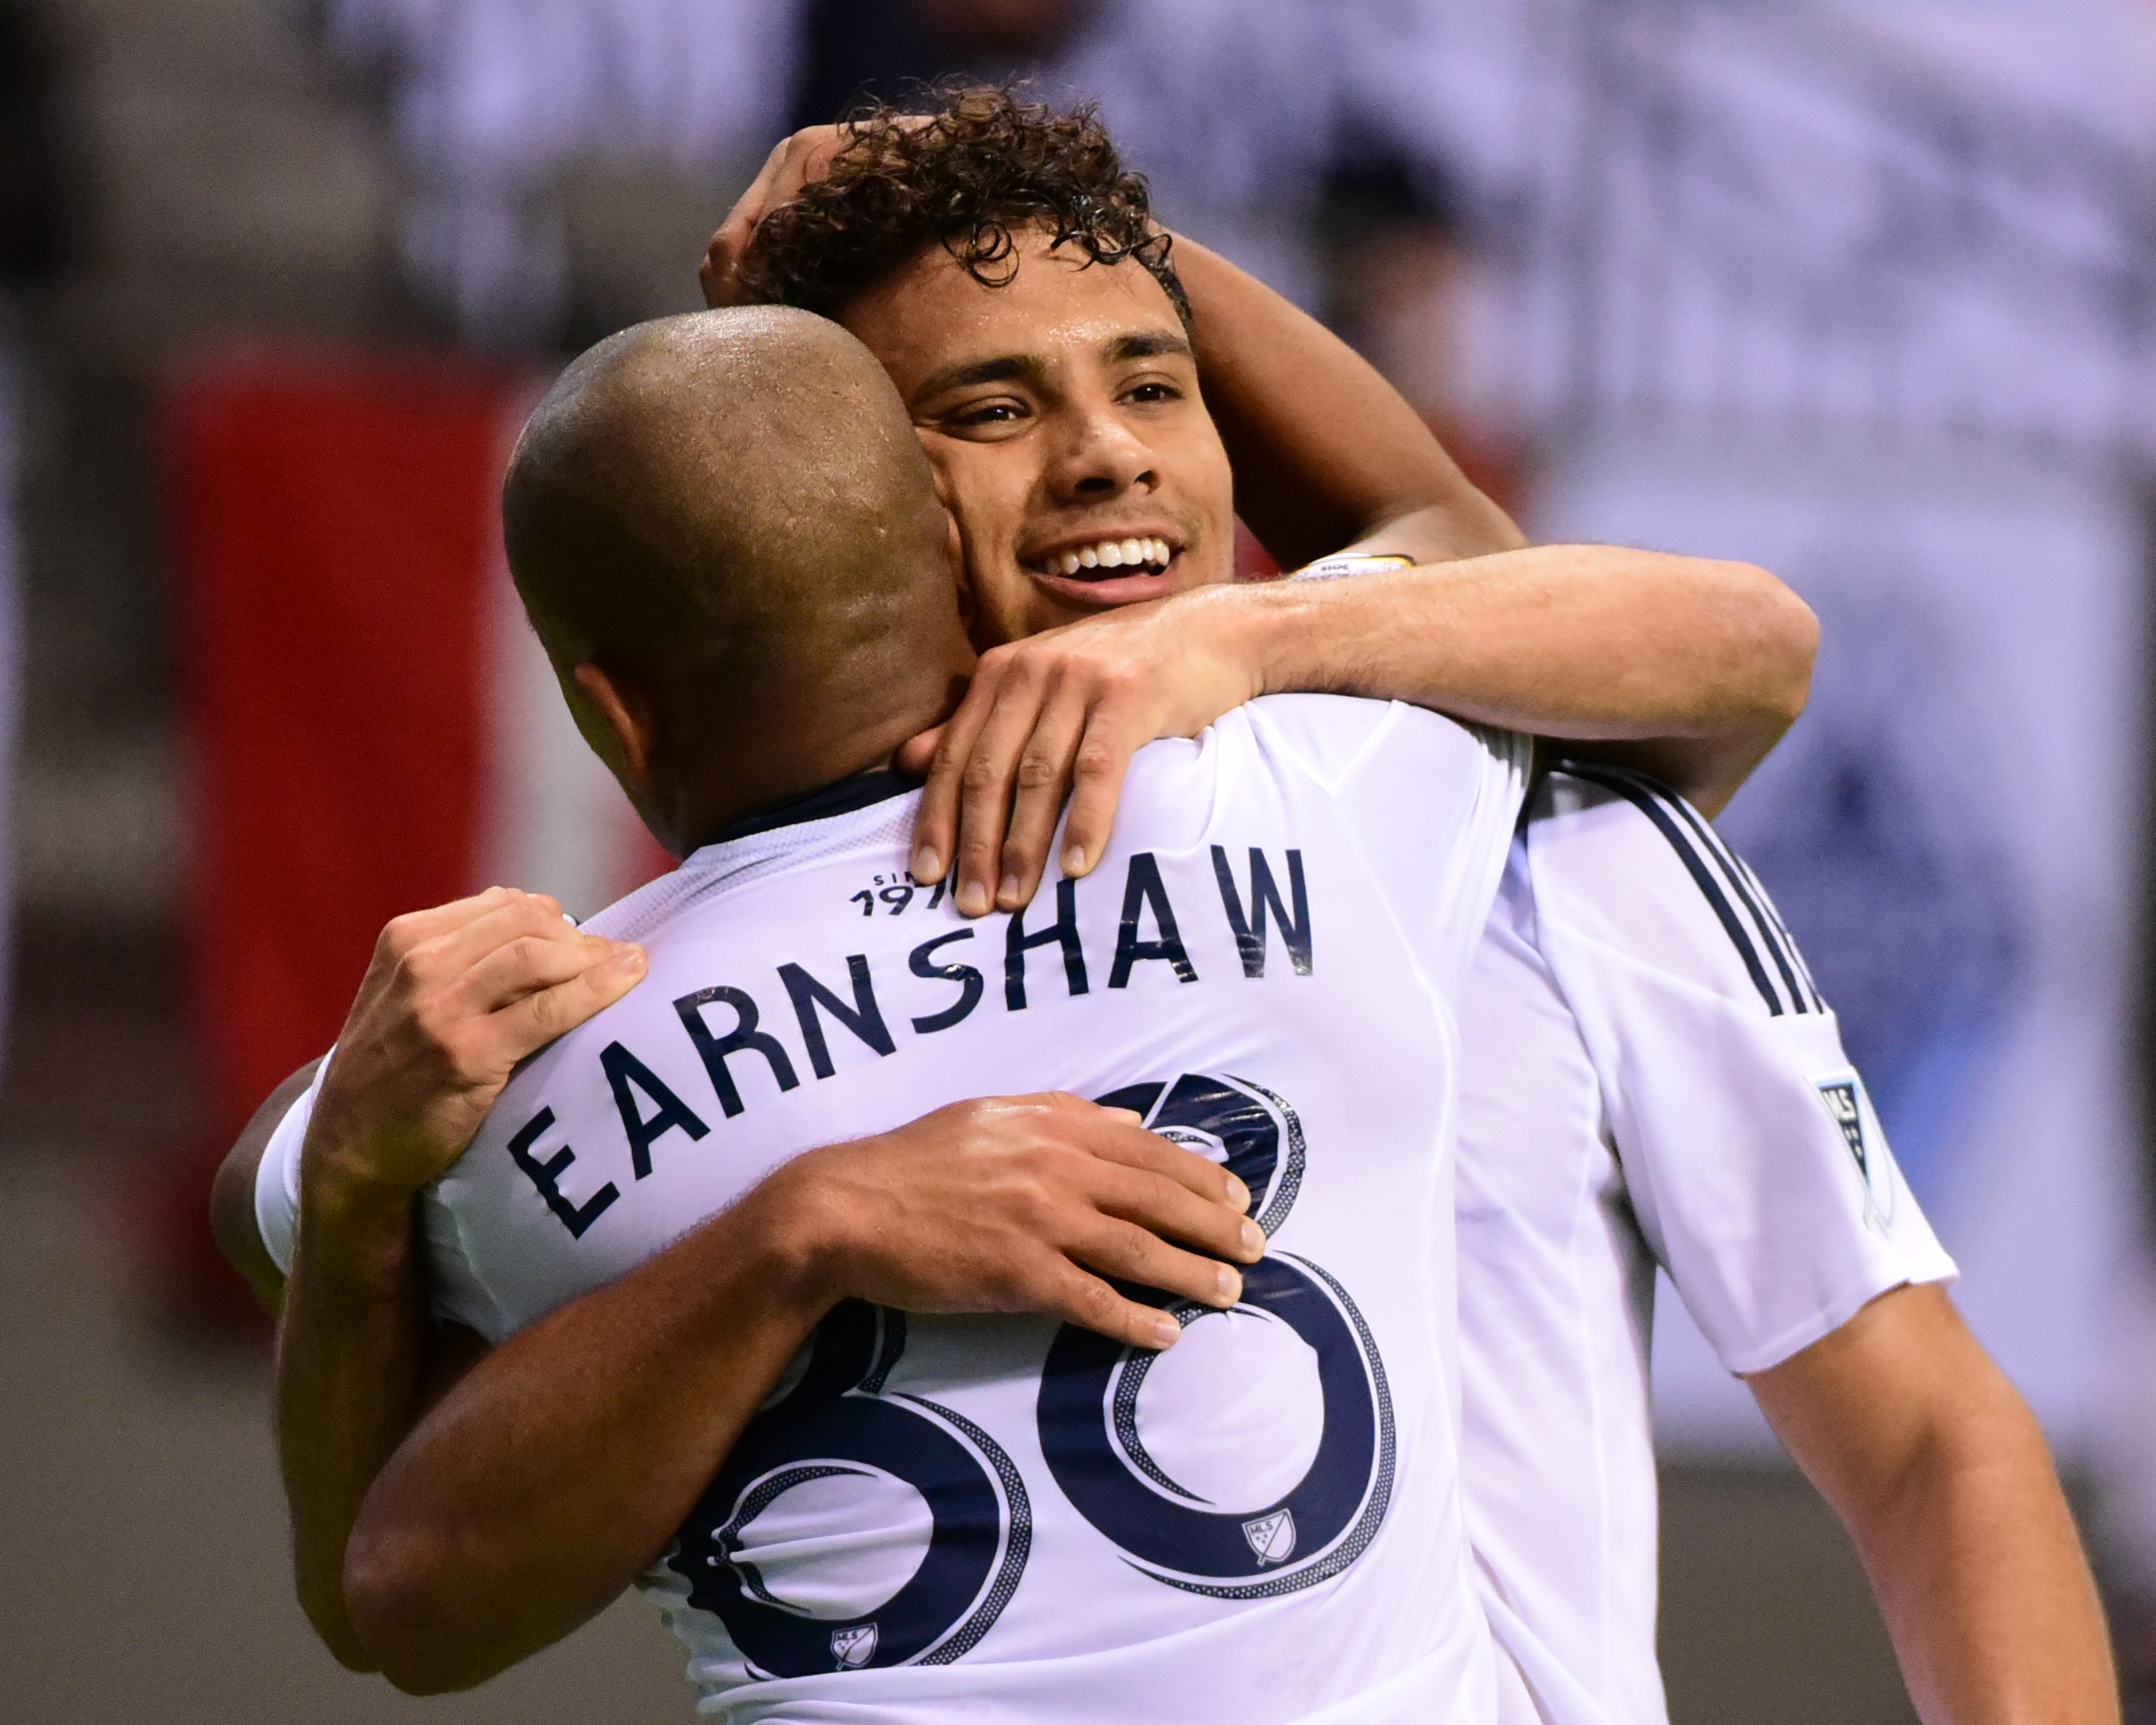 Kianz Froese (facing camera) celebrates scoring against CD Olimpia with teammate Robert Earnshaw.  The Whitecaps' victory moves them into a tie for first place in Group F with the Seattle Sounders.